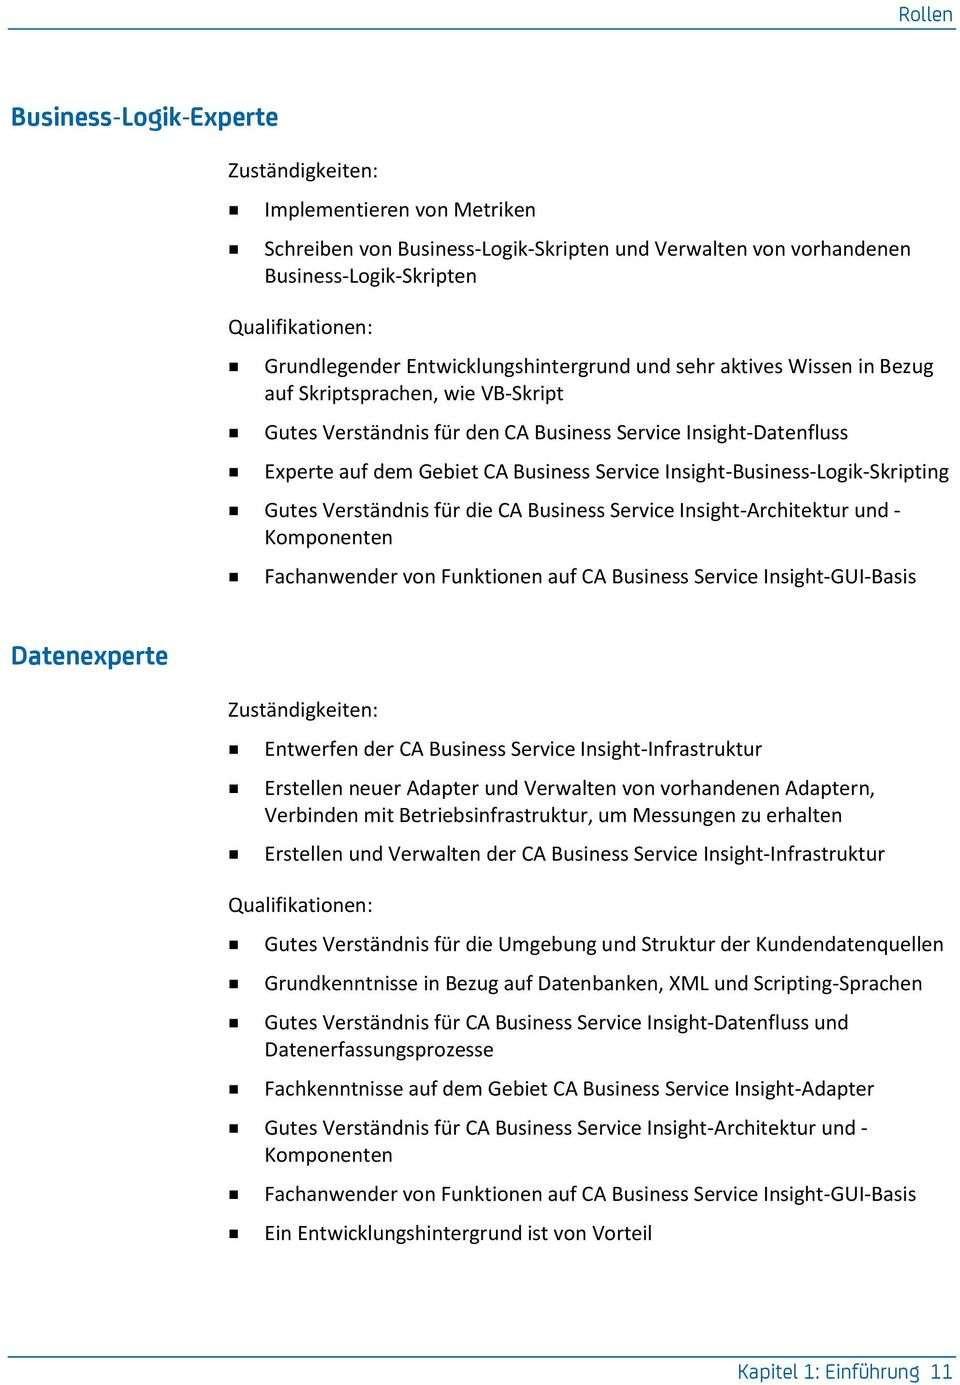 Insight-Business-Logik-Skripting Gutes Verständnis für die CA Business Service Insight-Architektur und - Komponenten Fachanwender von Funktionen auf CA Business Service Insight-GUI-Basis Datenexperte